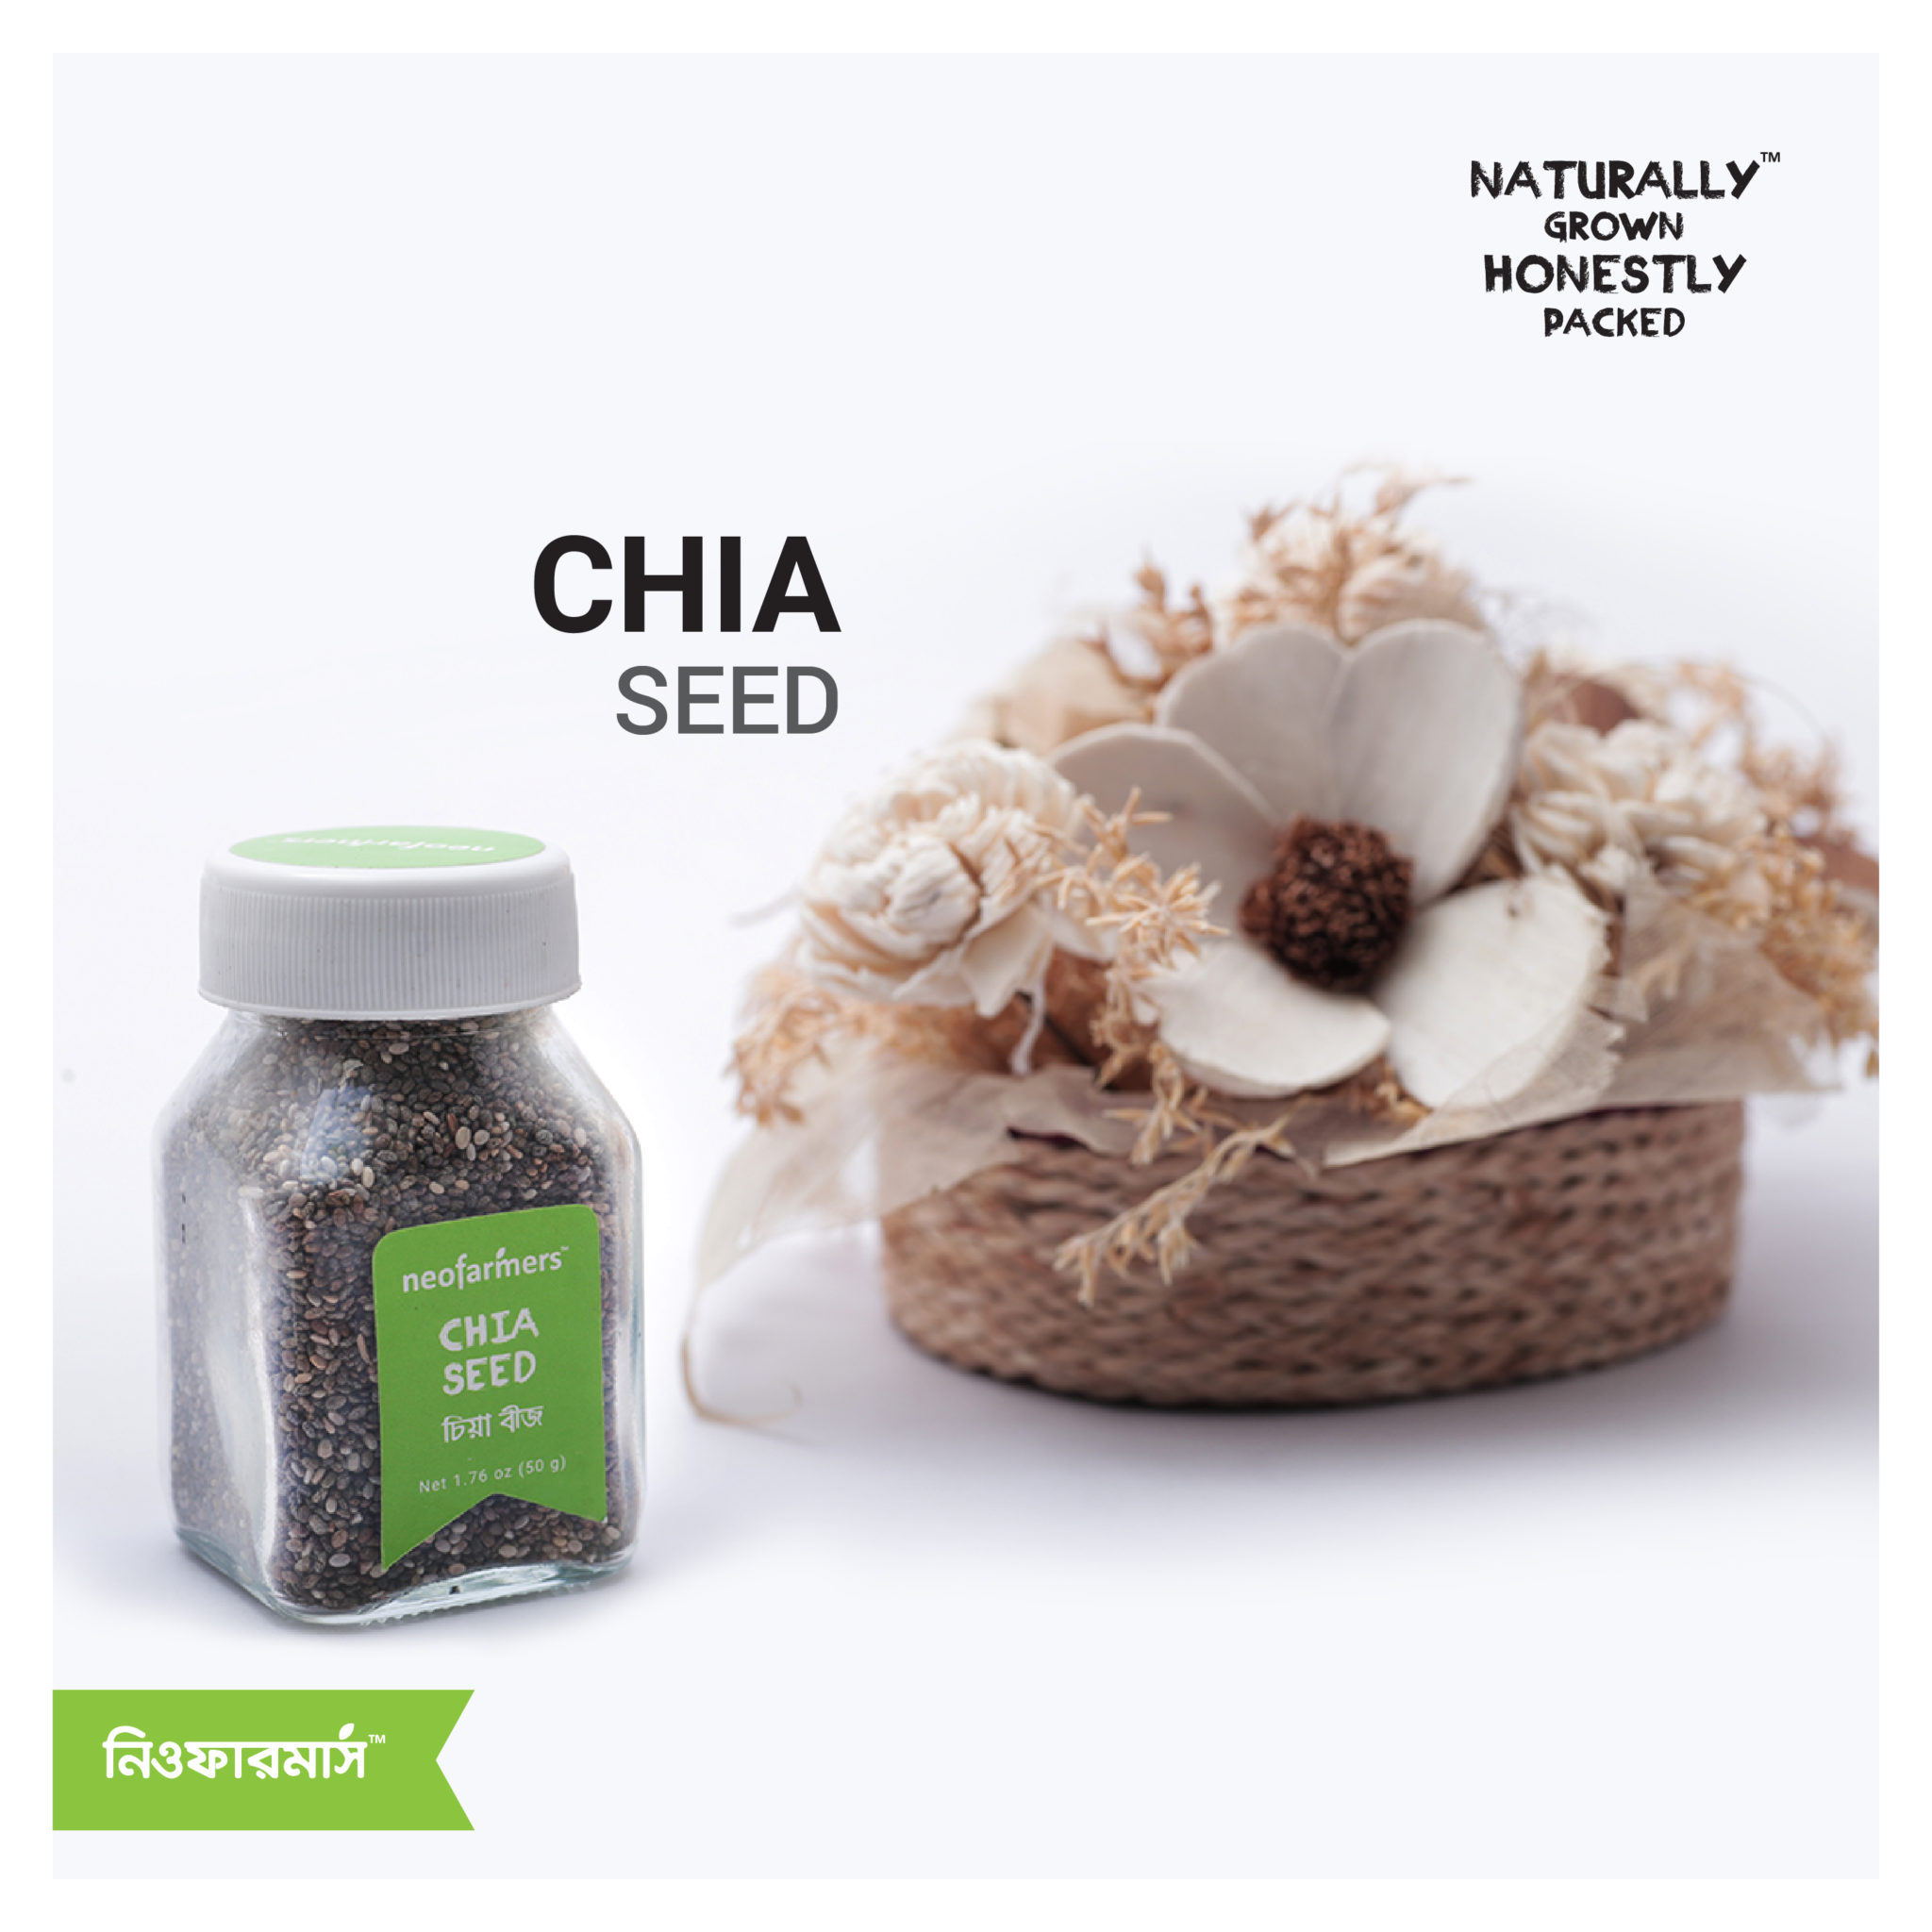 Chia seed: The new superfood